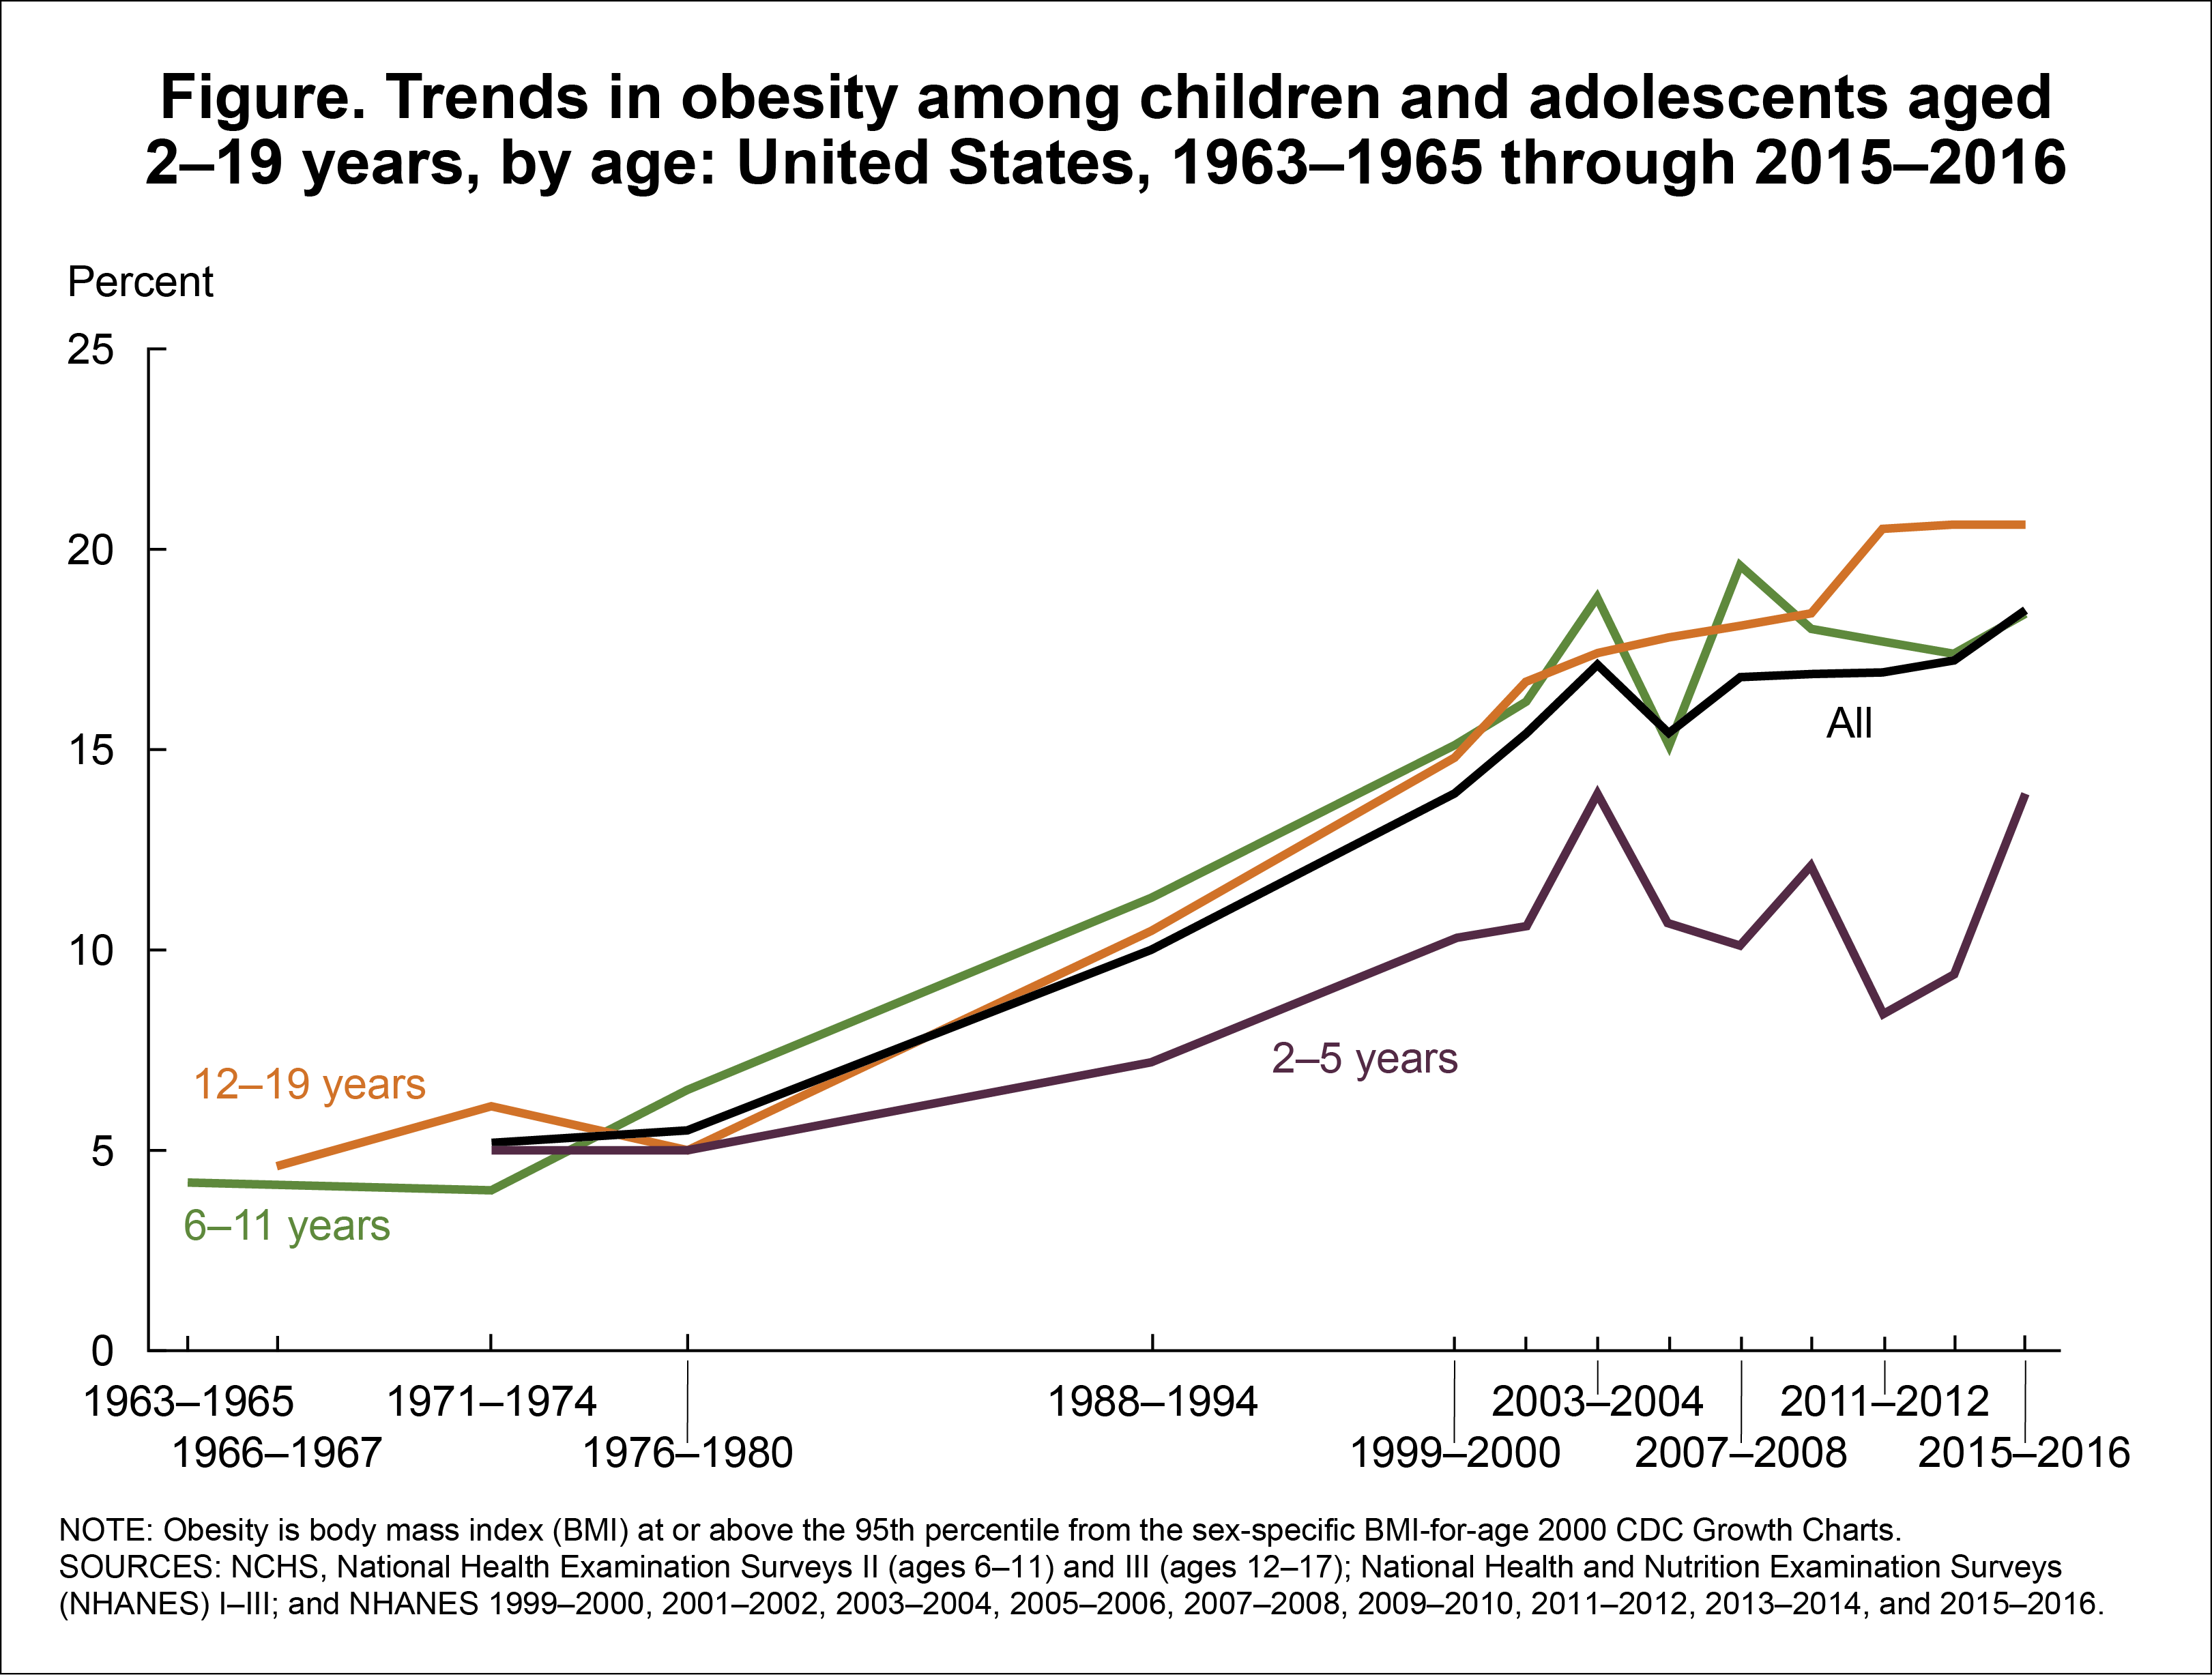 Products Health E Stats Prevalence Of Overweight And Obesity Among Children And Adolescents Aged 2 19 Years United States 1963 1965 Through 2013 2014